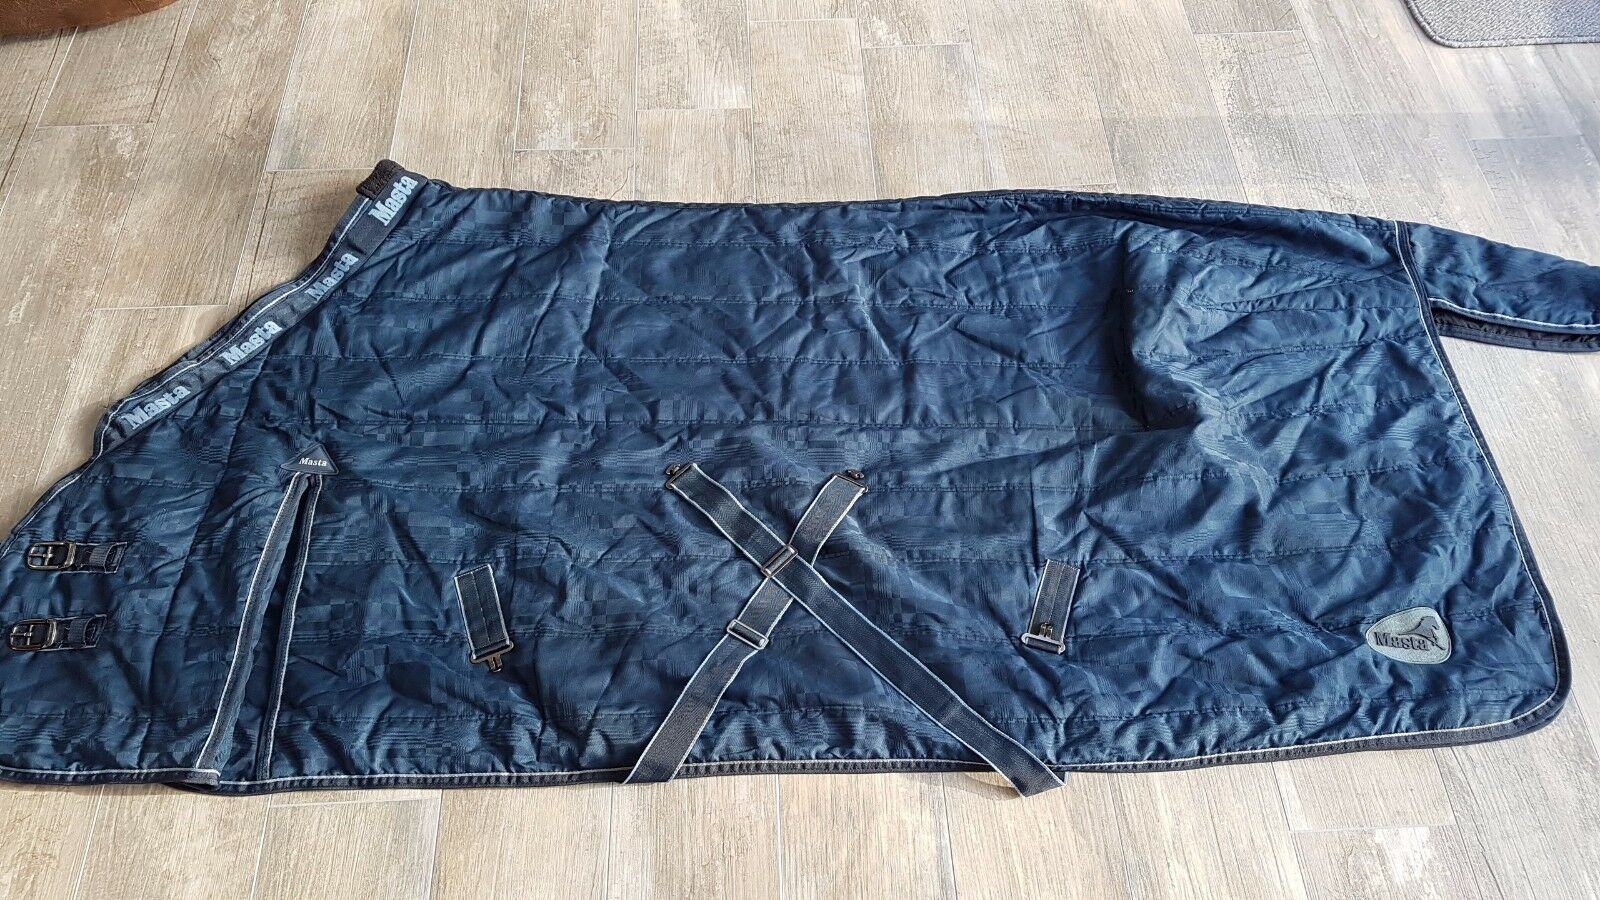 7ft3 Masta Lightweight Stable Rug. Only Been Used A Couple of Times